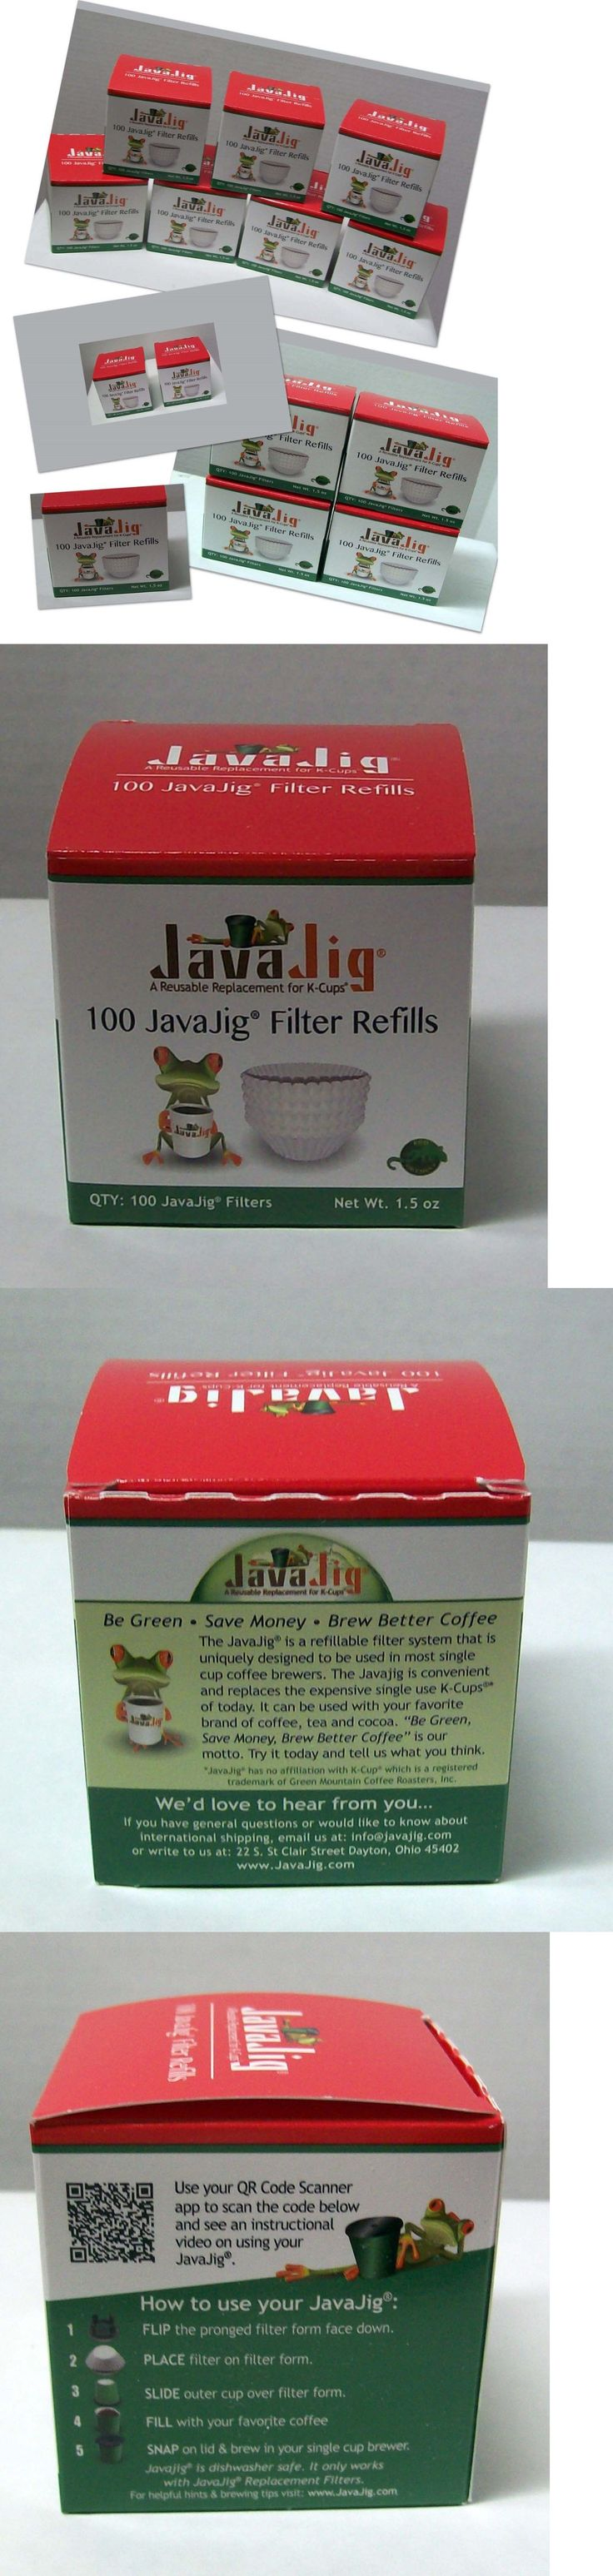 Coffee Makers Specialty 177752: Javajig Filter Refill Java Jig Melitta K-Cup Holder (2Bxs 4Bxs 7Bxs-100 Ea) -> BUY IT NOW ONLY: $42.75 on eBay!